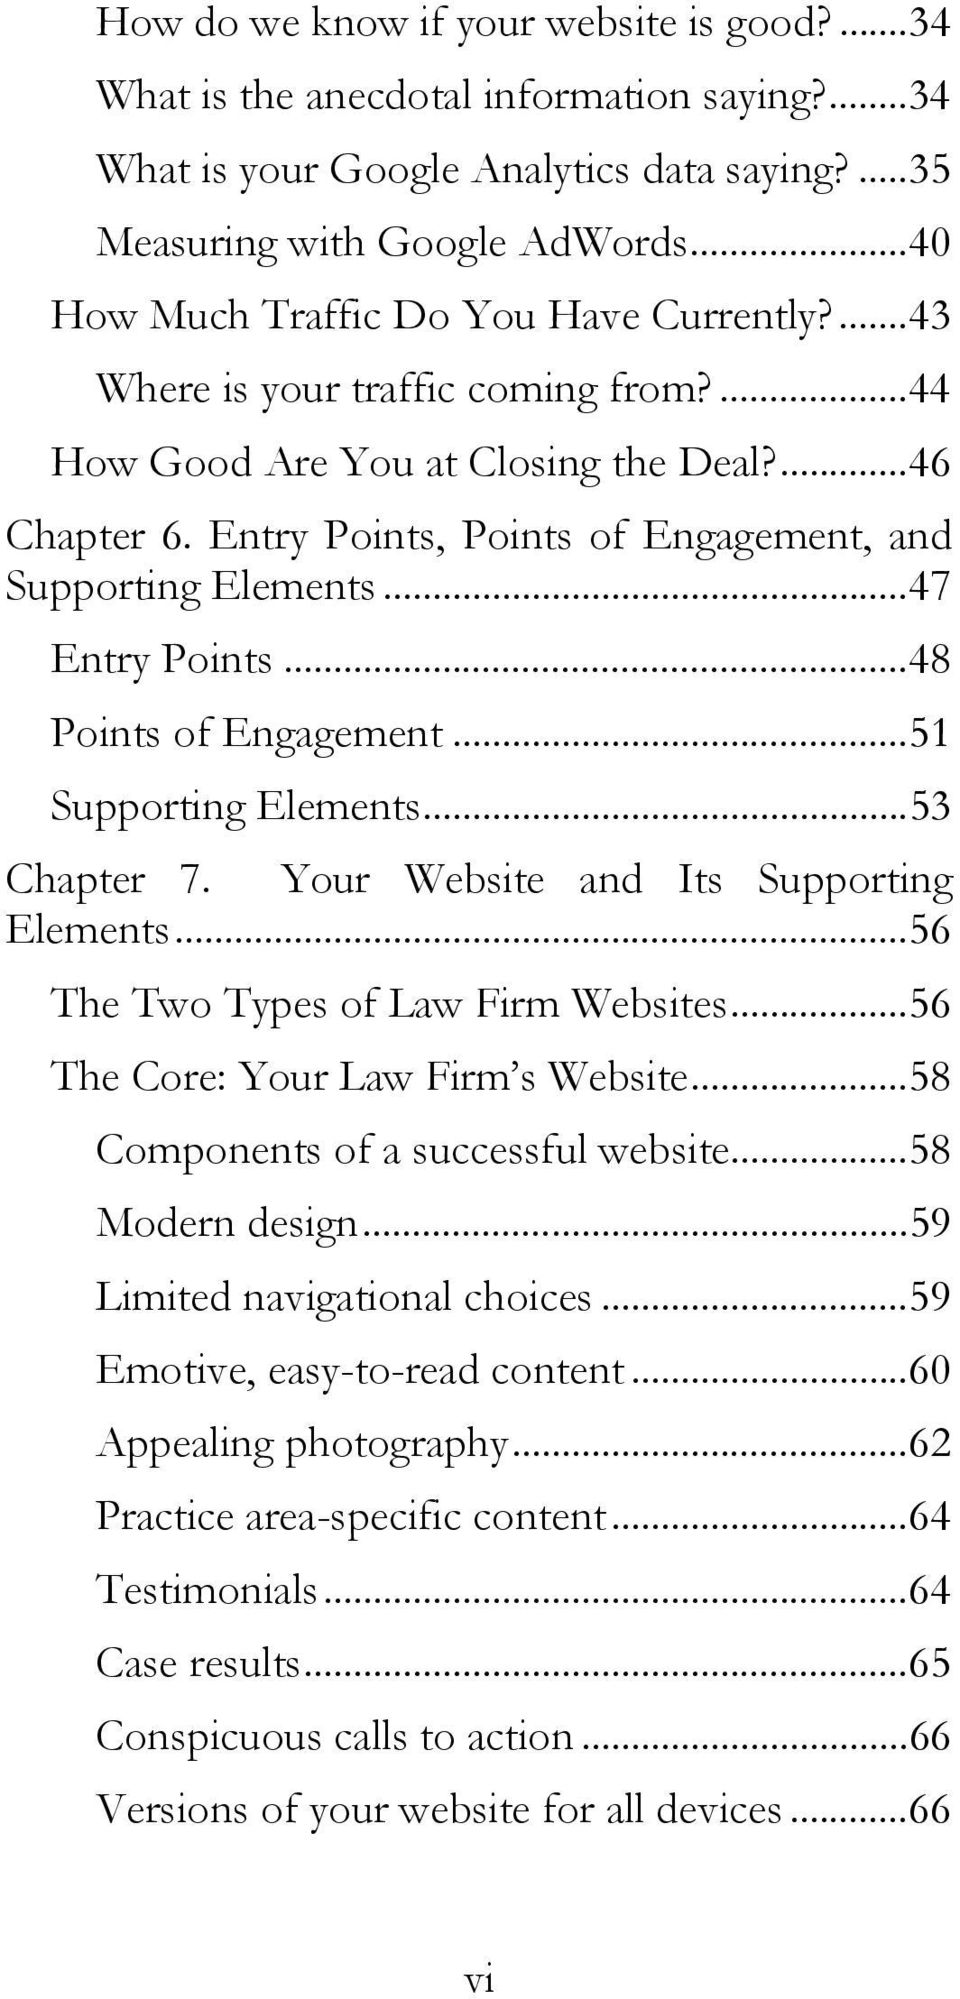 Entry Points, Points of Engagement, and Supporting Elements...47 Entry Points...48 Points of Engagement...51 Supporting Elements...53 Chapter 7. Your Website and Its Supporting Elements.